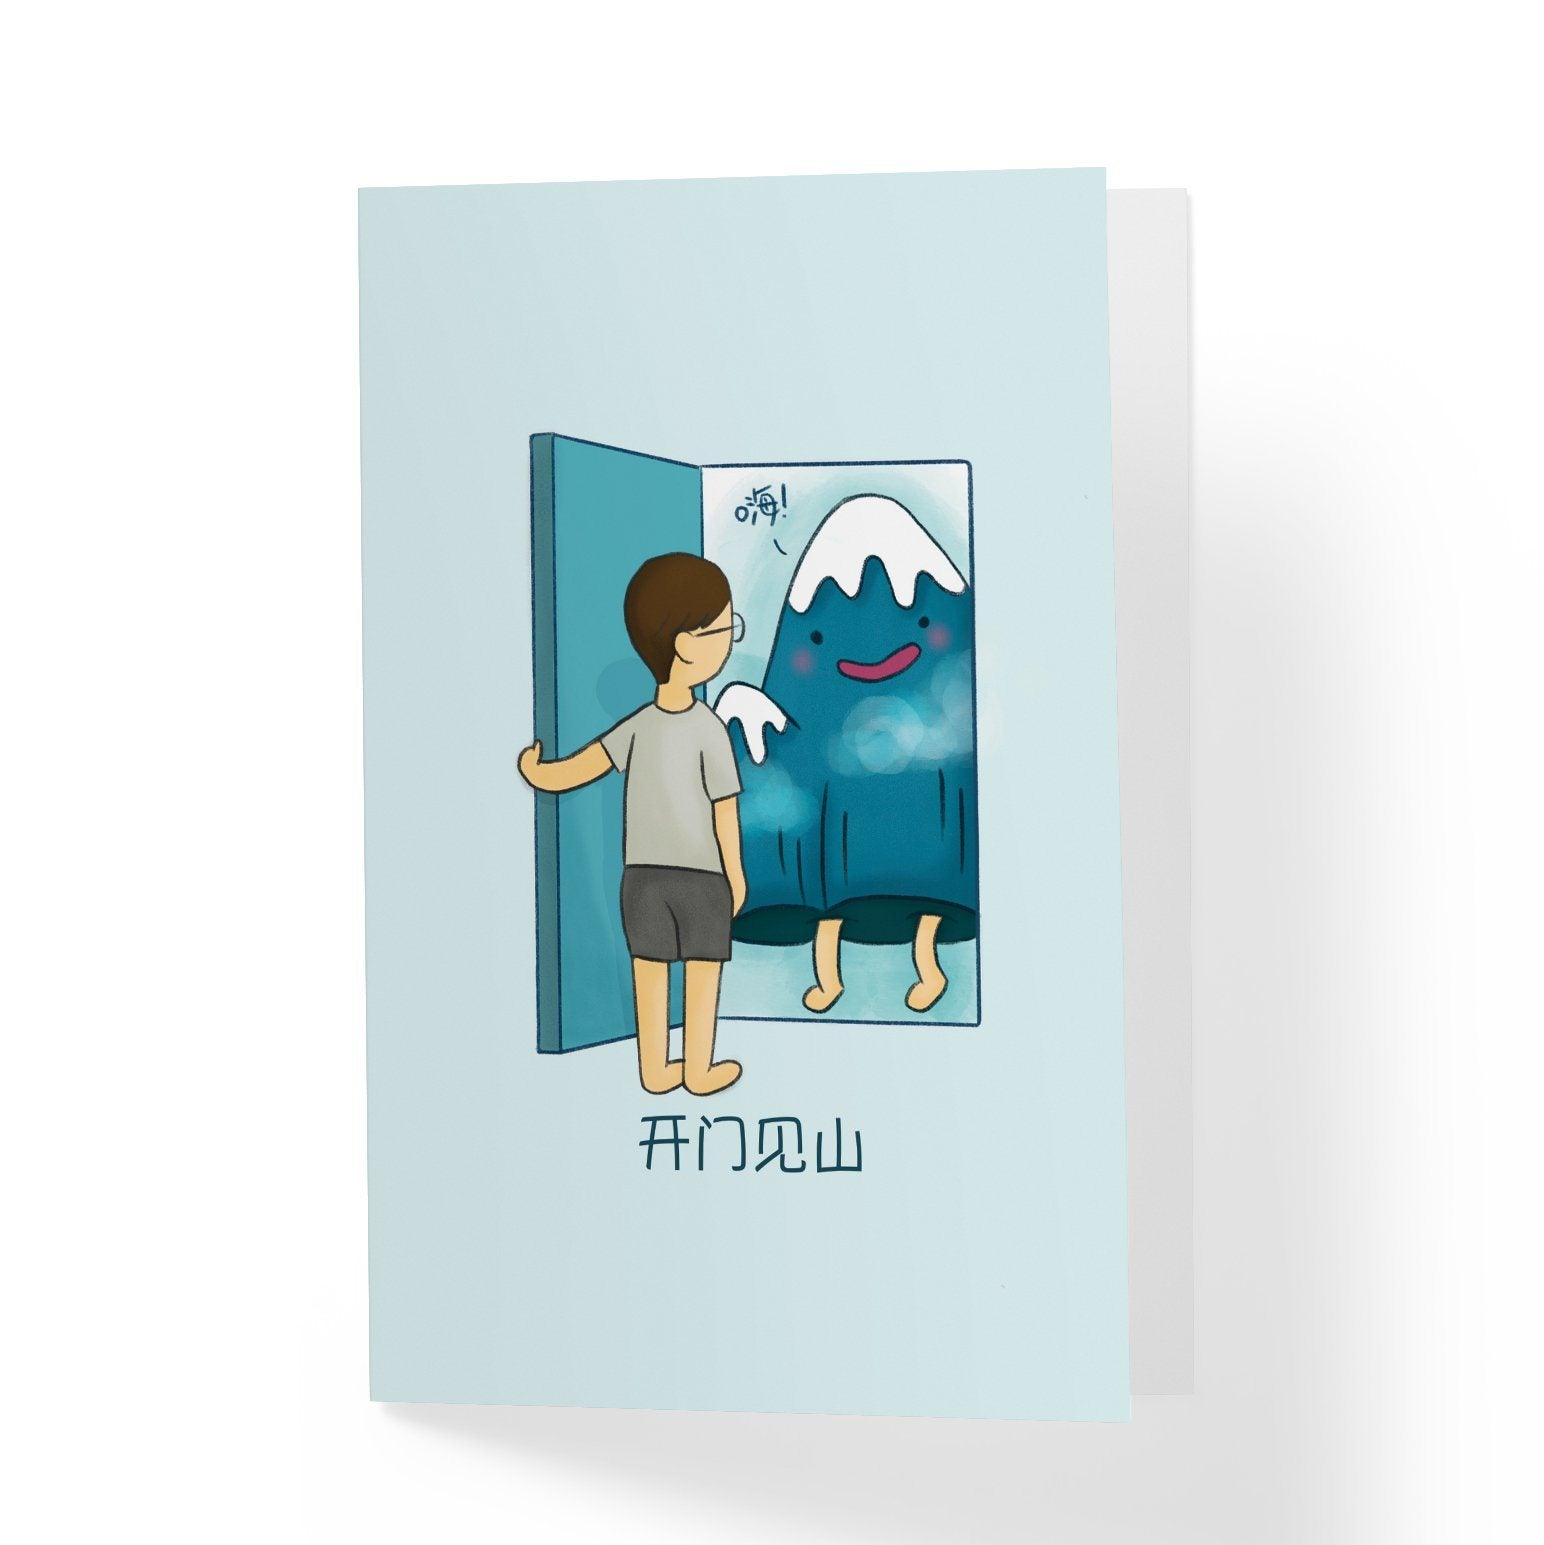 Mountain Chinese Pun Greeting Card Generic Greeting Cards A Wild Exploration